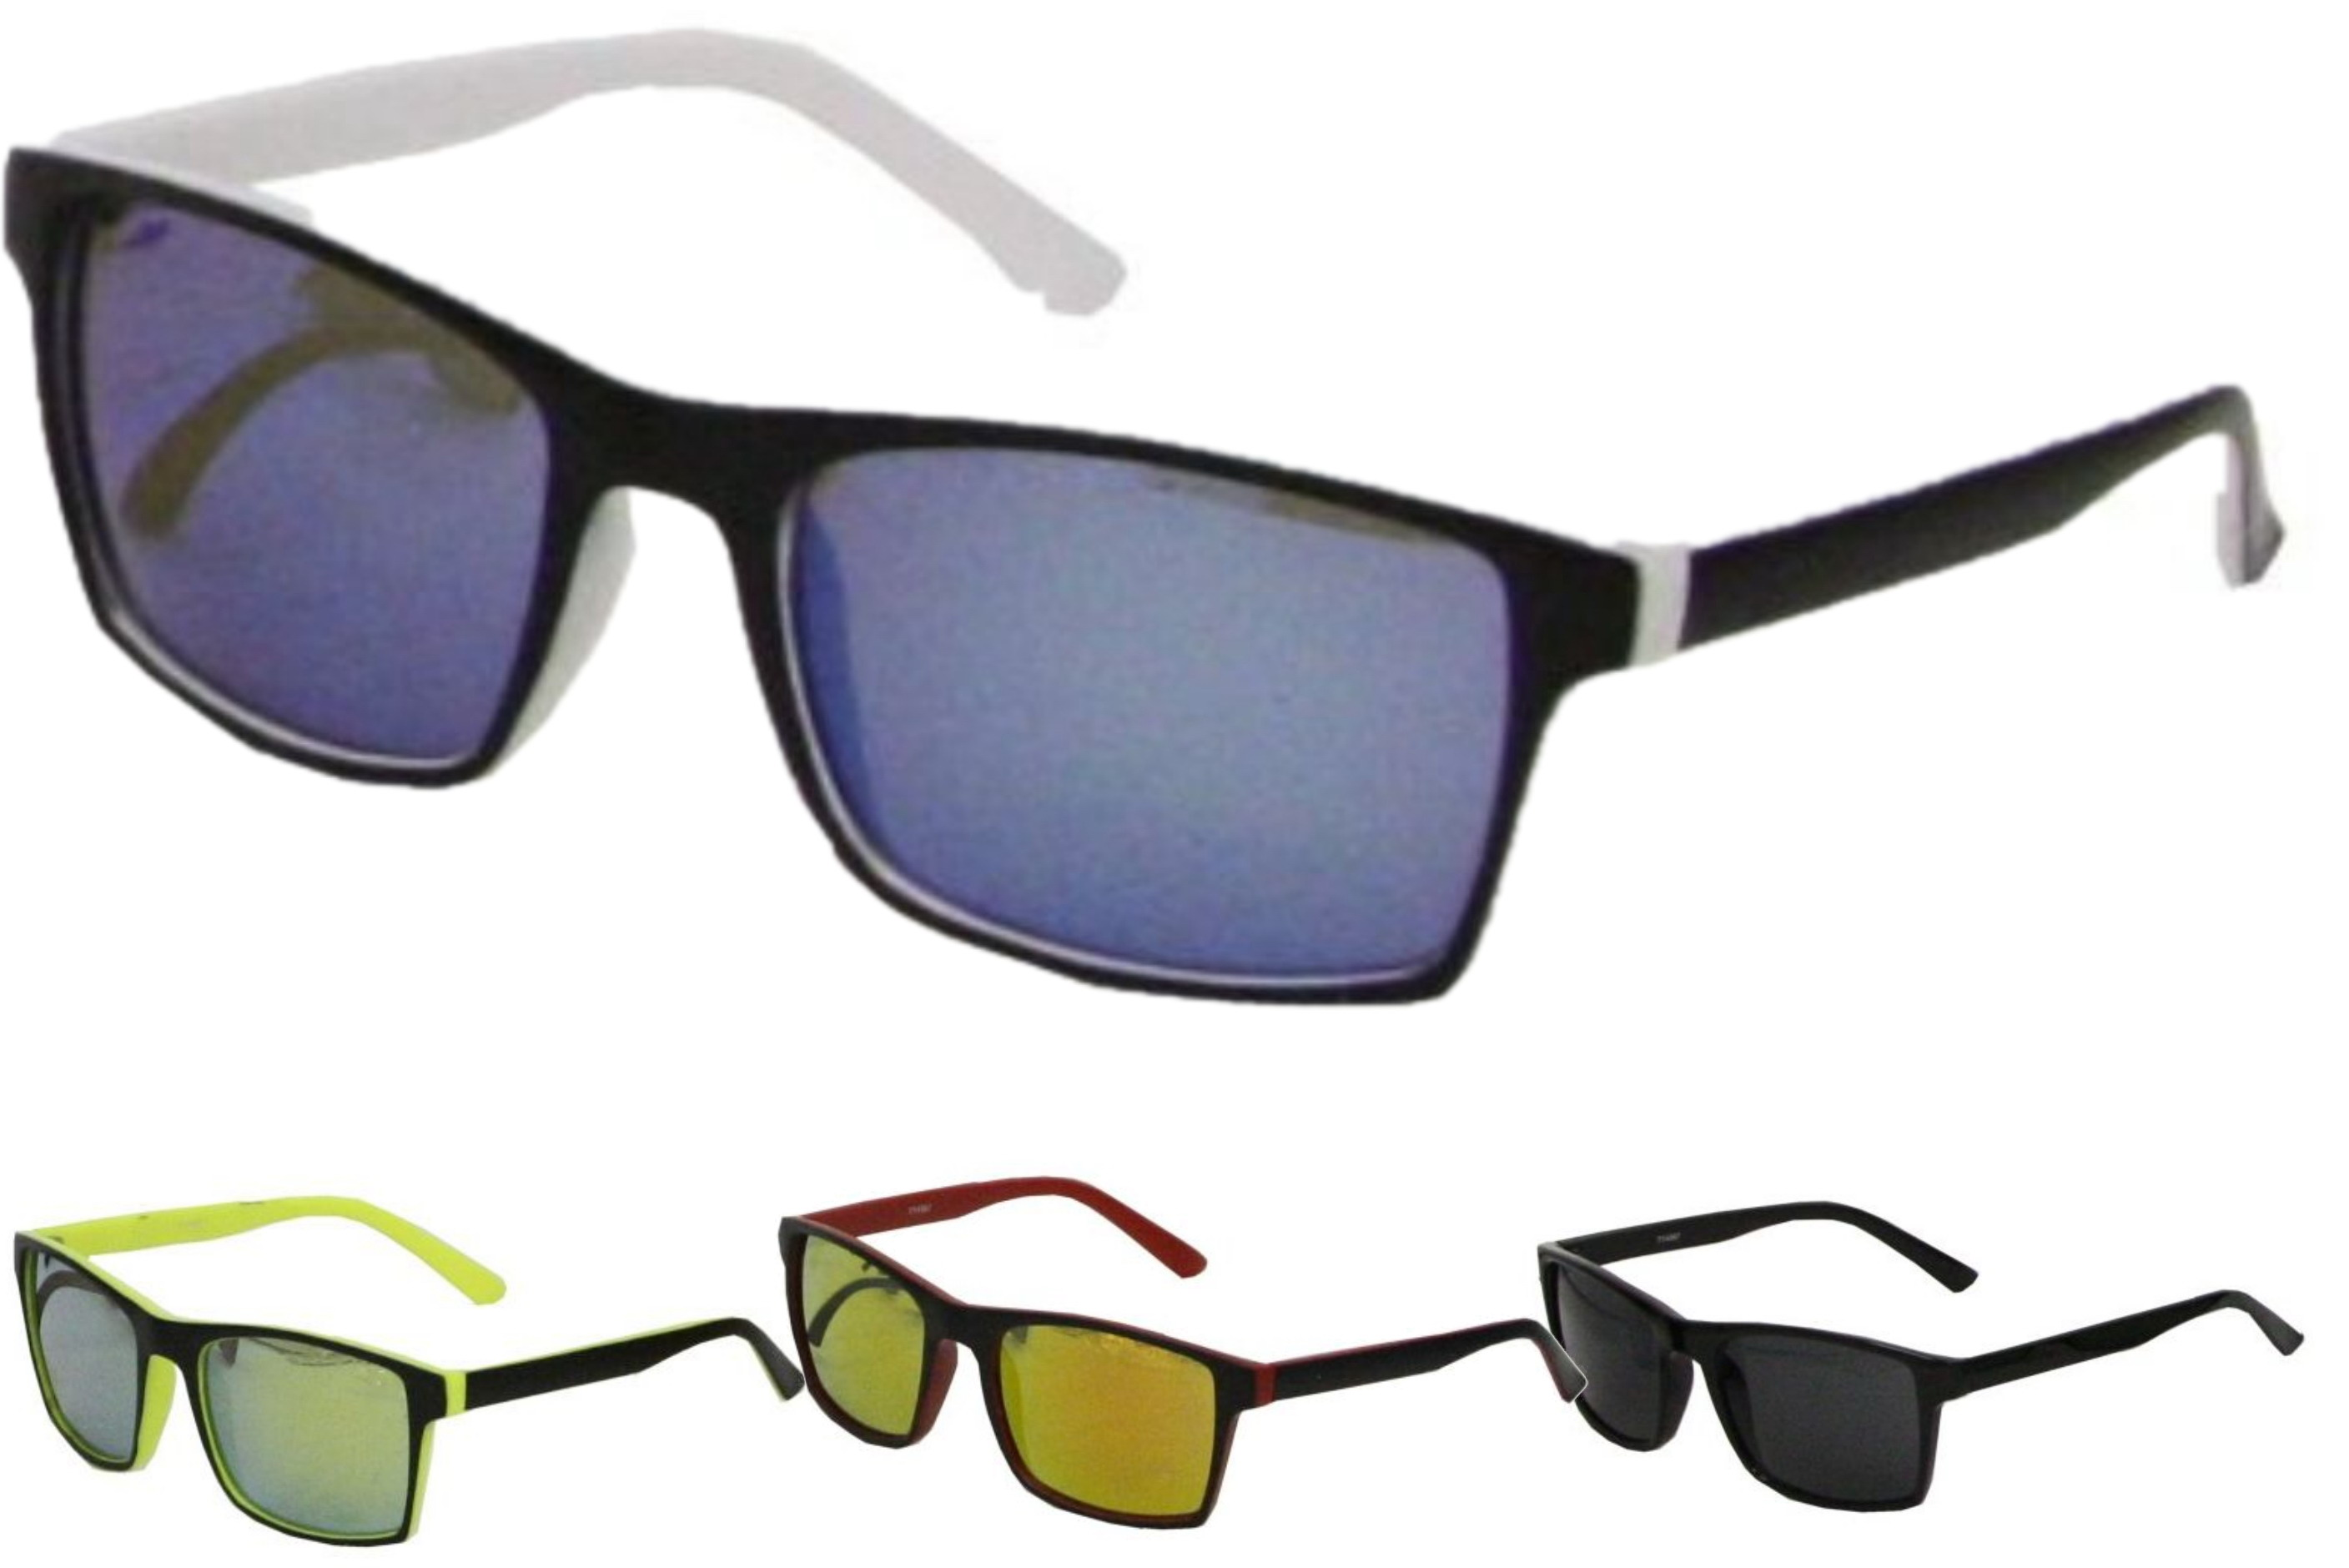 Adult 2 Colour Plastic Frame Sunglasses - 4 Assorted